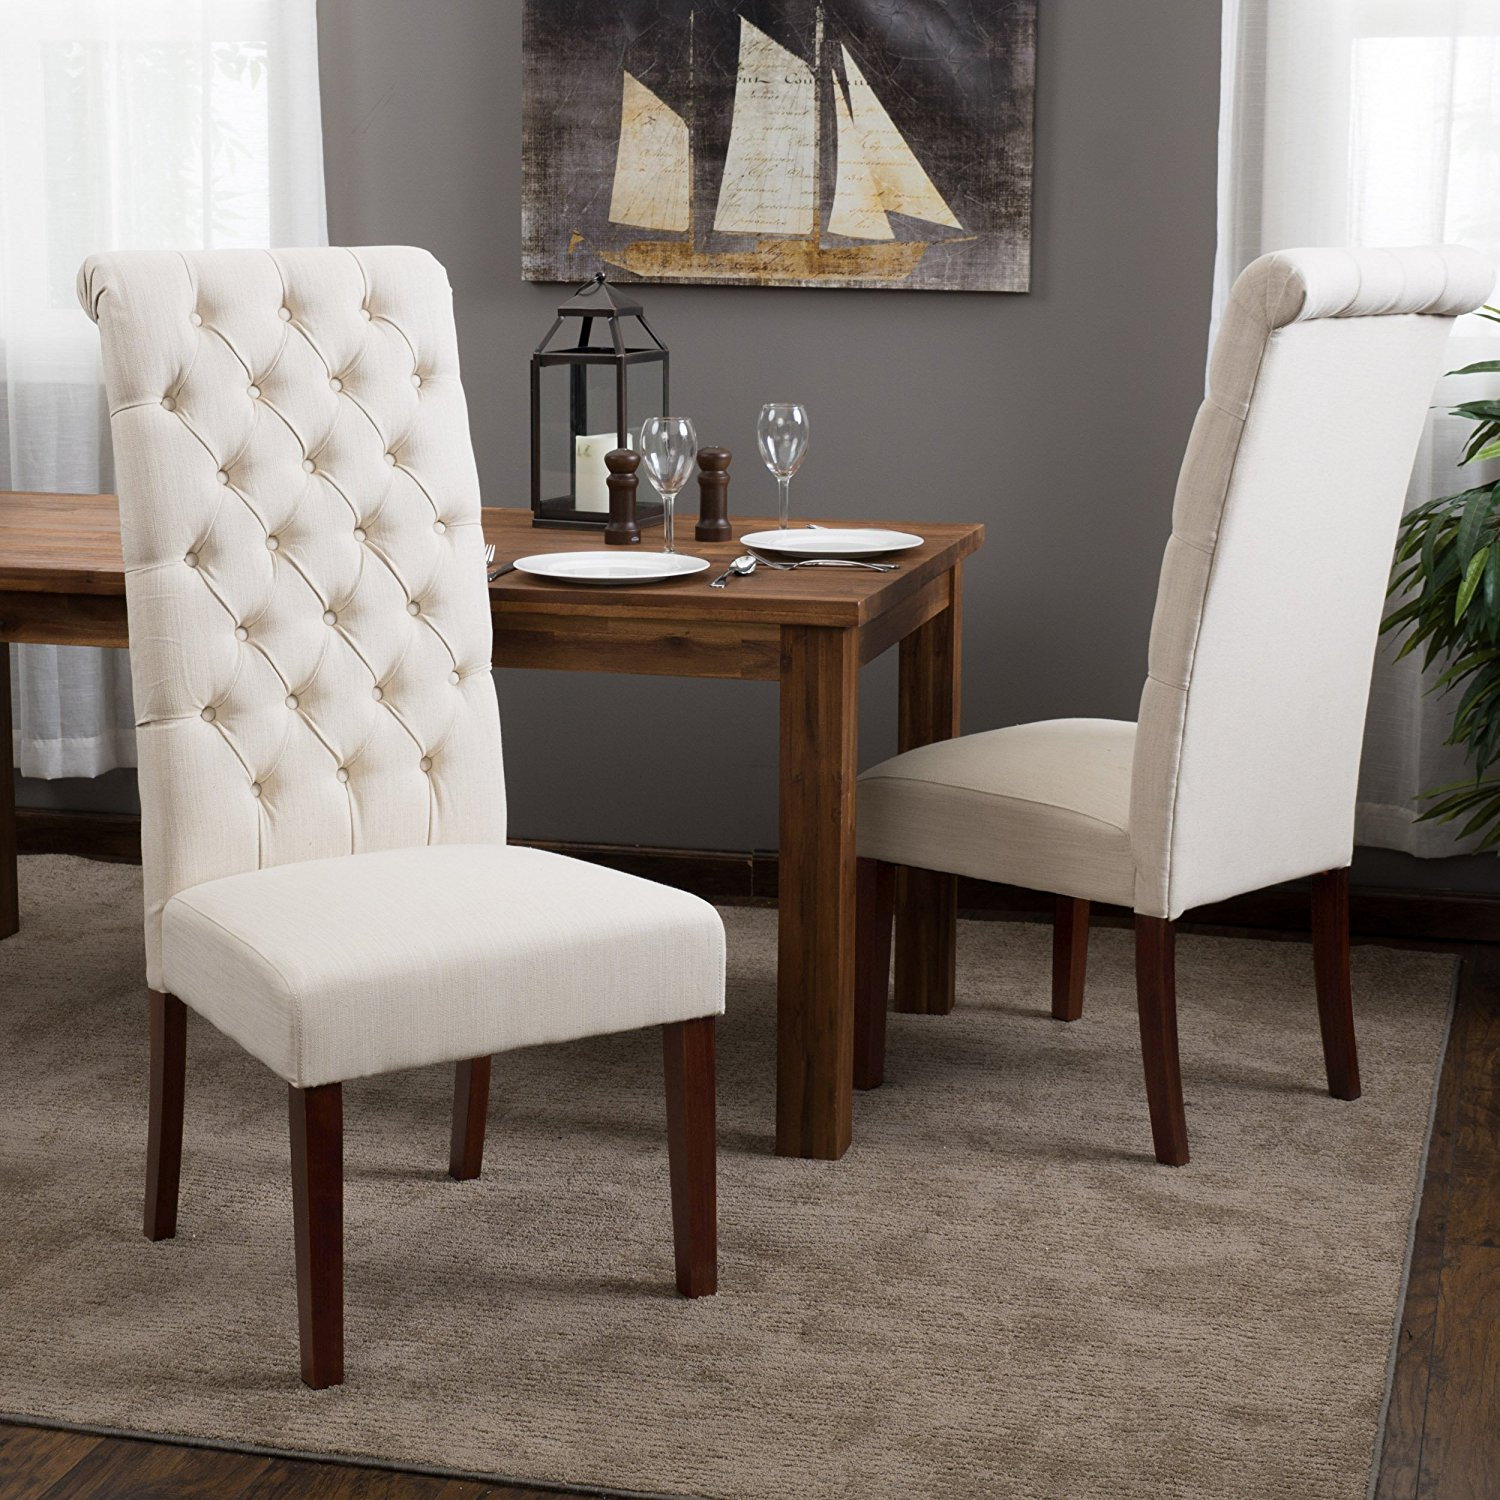 Amazon Dining Chairs   Ring Back Dining Chair   Tufted Dining Chair